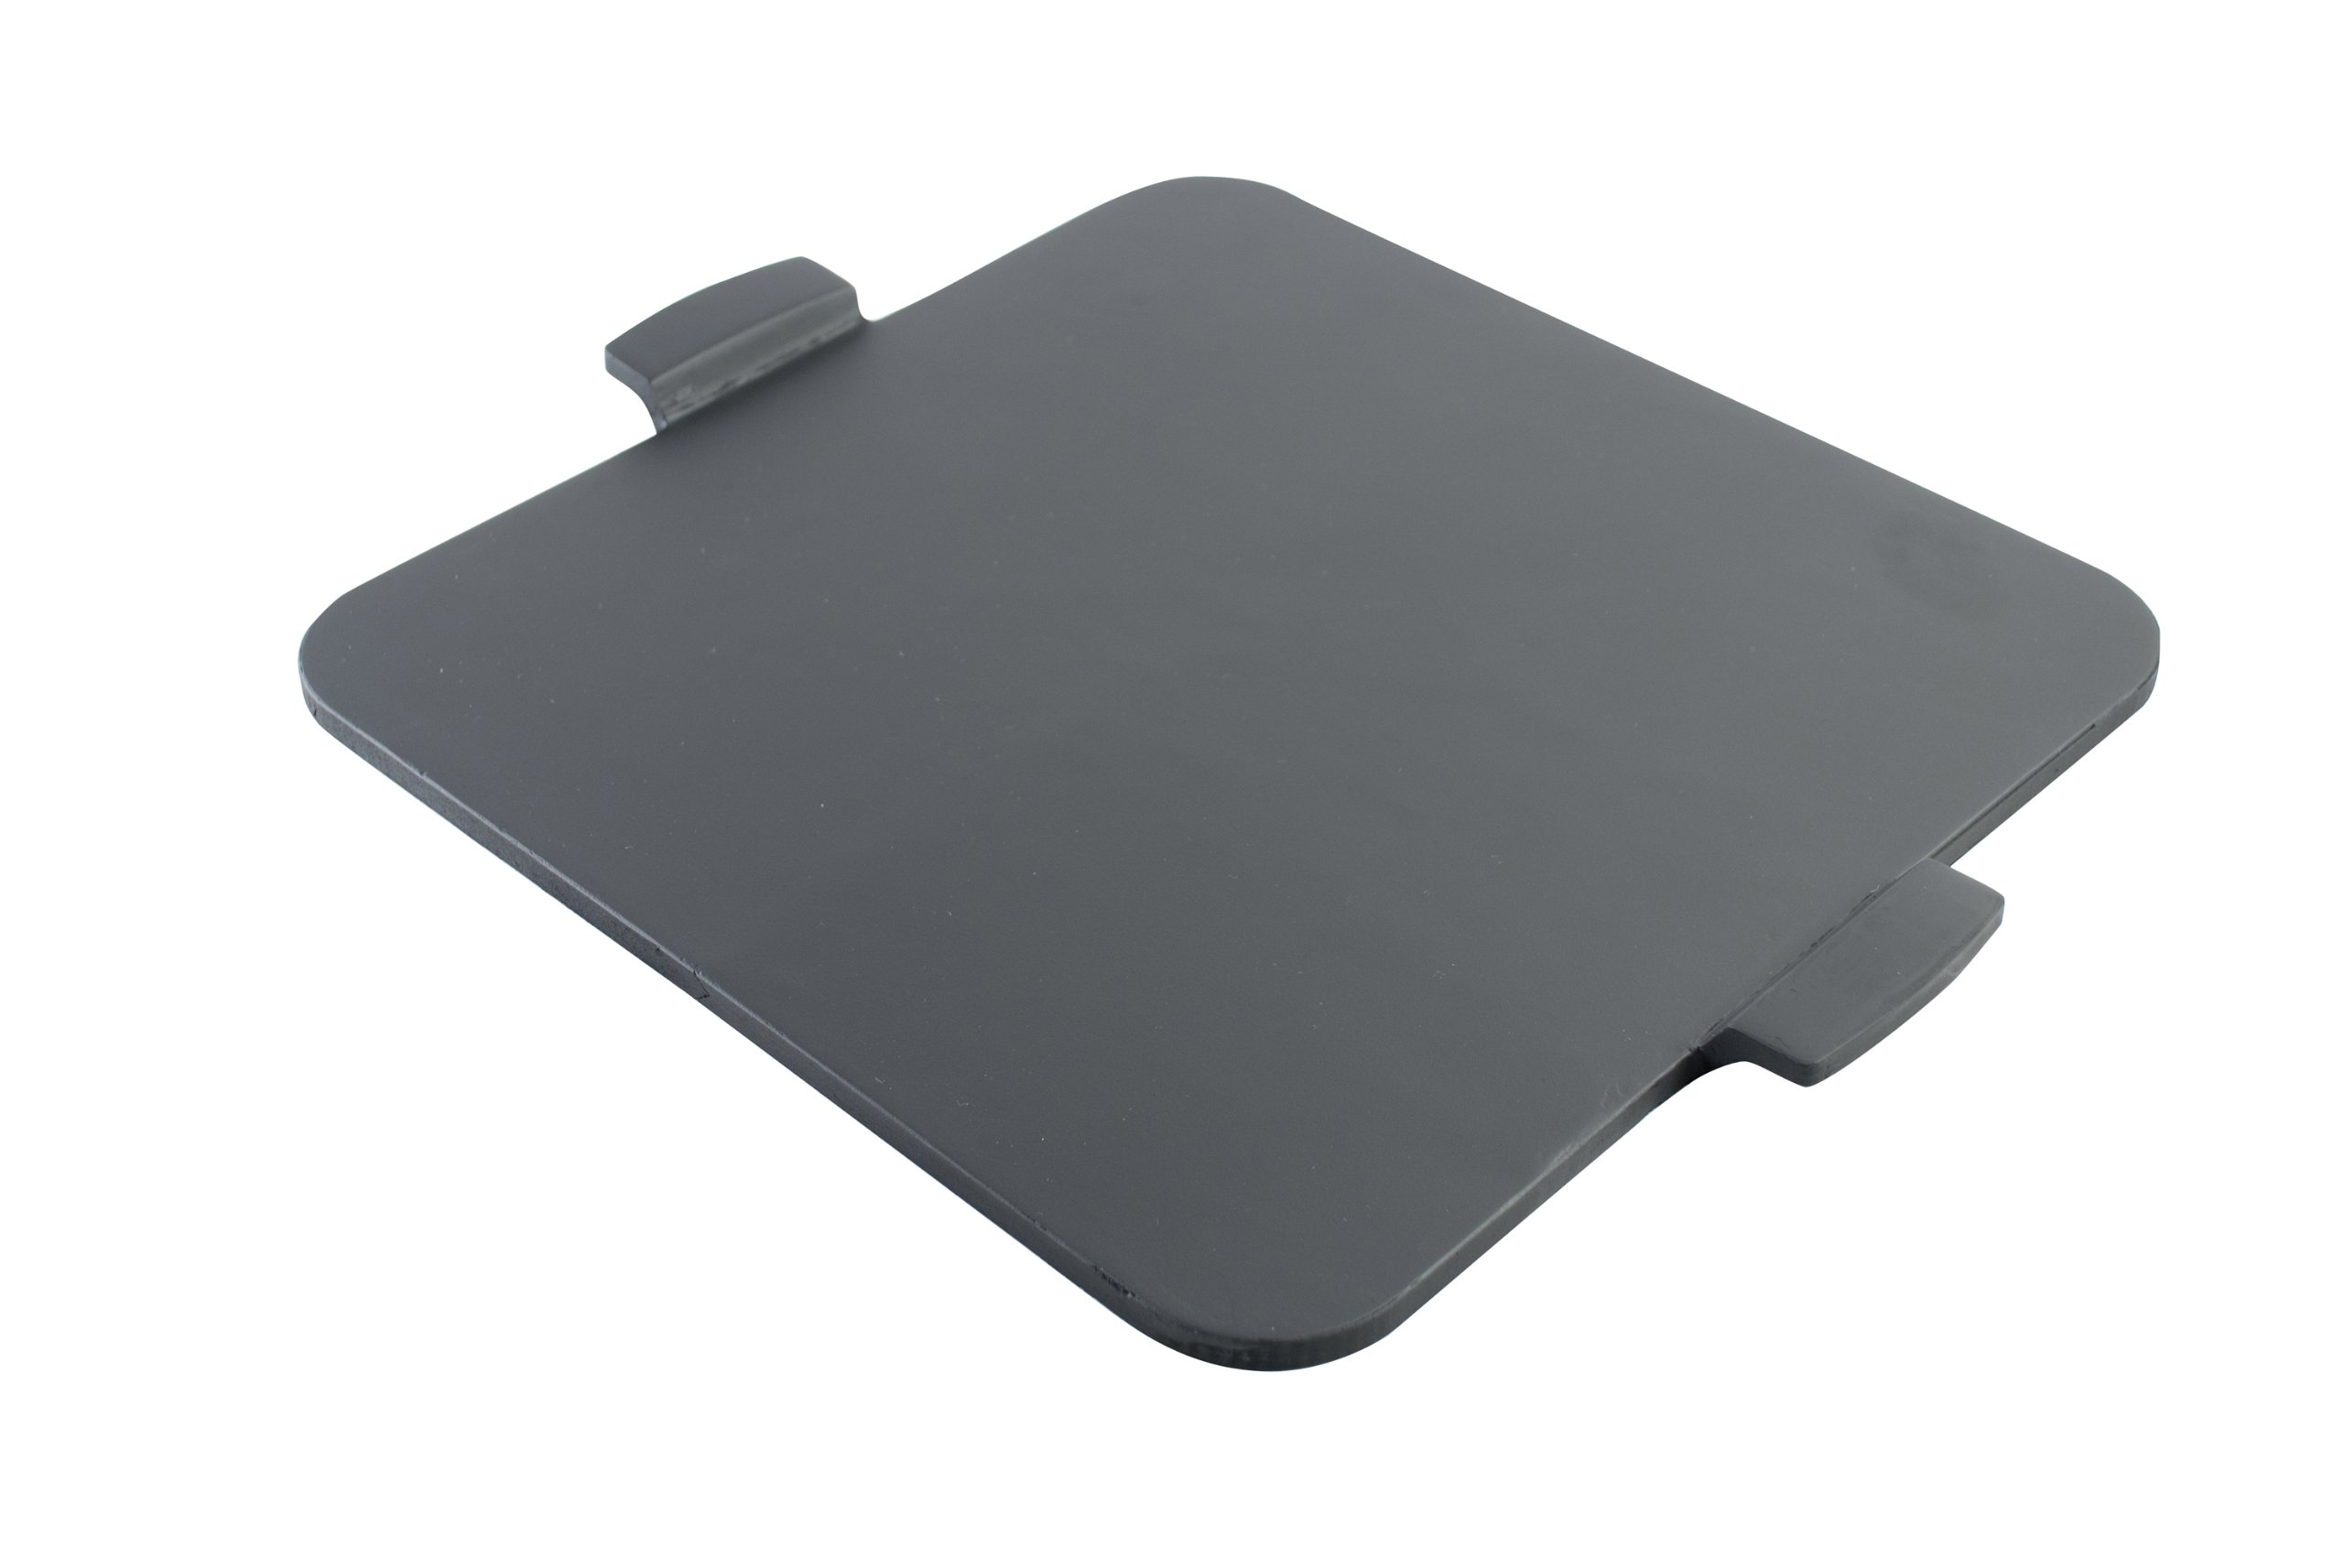 Pizzacraft 14.5'' Square Glazed Pizza Grilling Stone with Handles - PC0111 (Black)